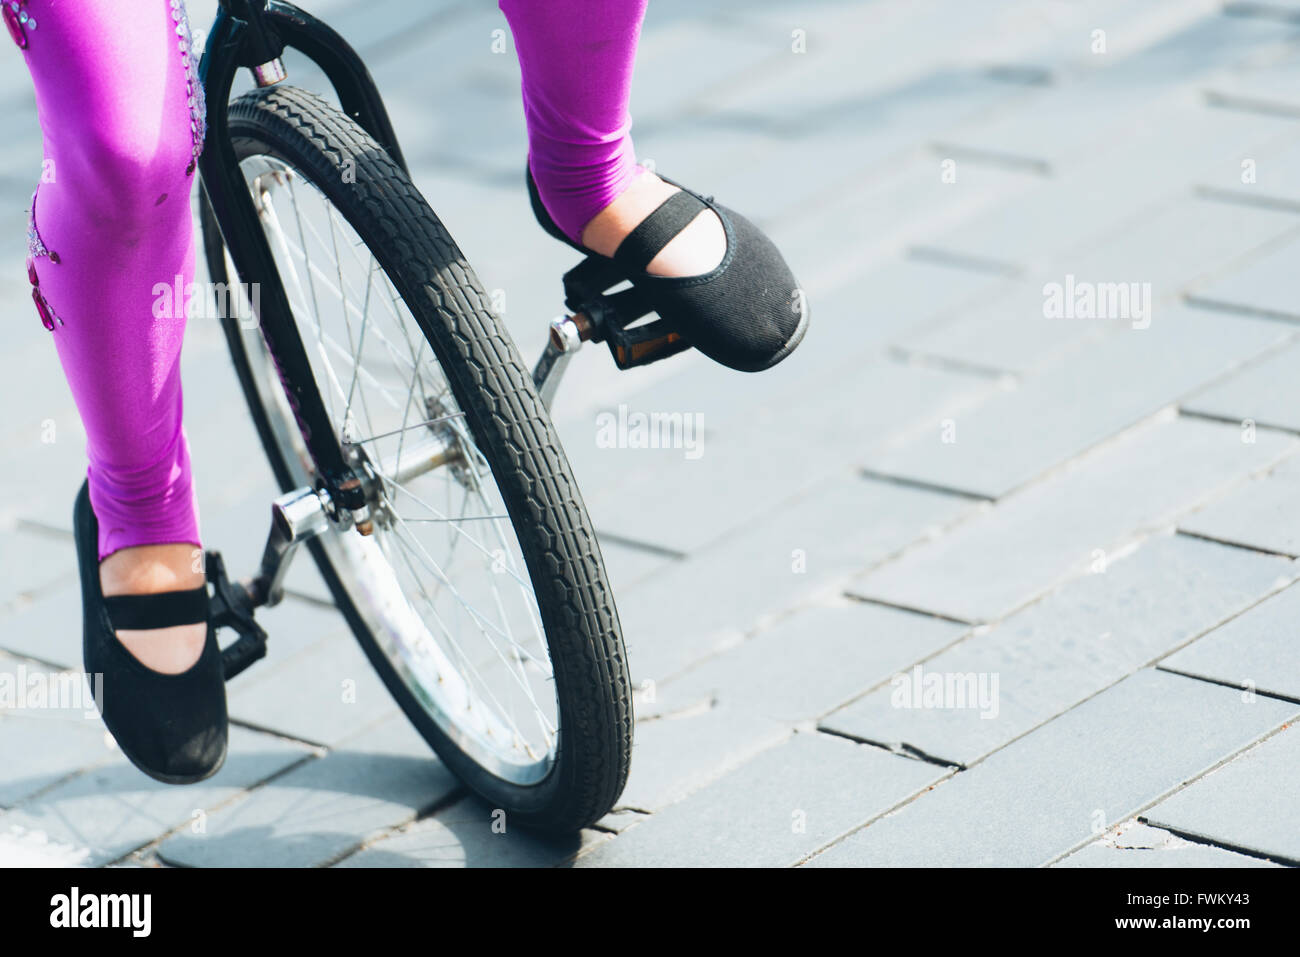 Low Section Of Woman Riding Bicycle On Street Stock Photo